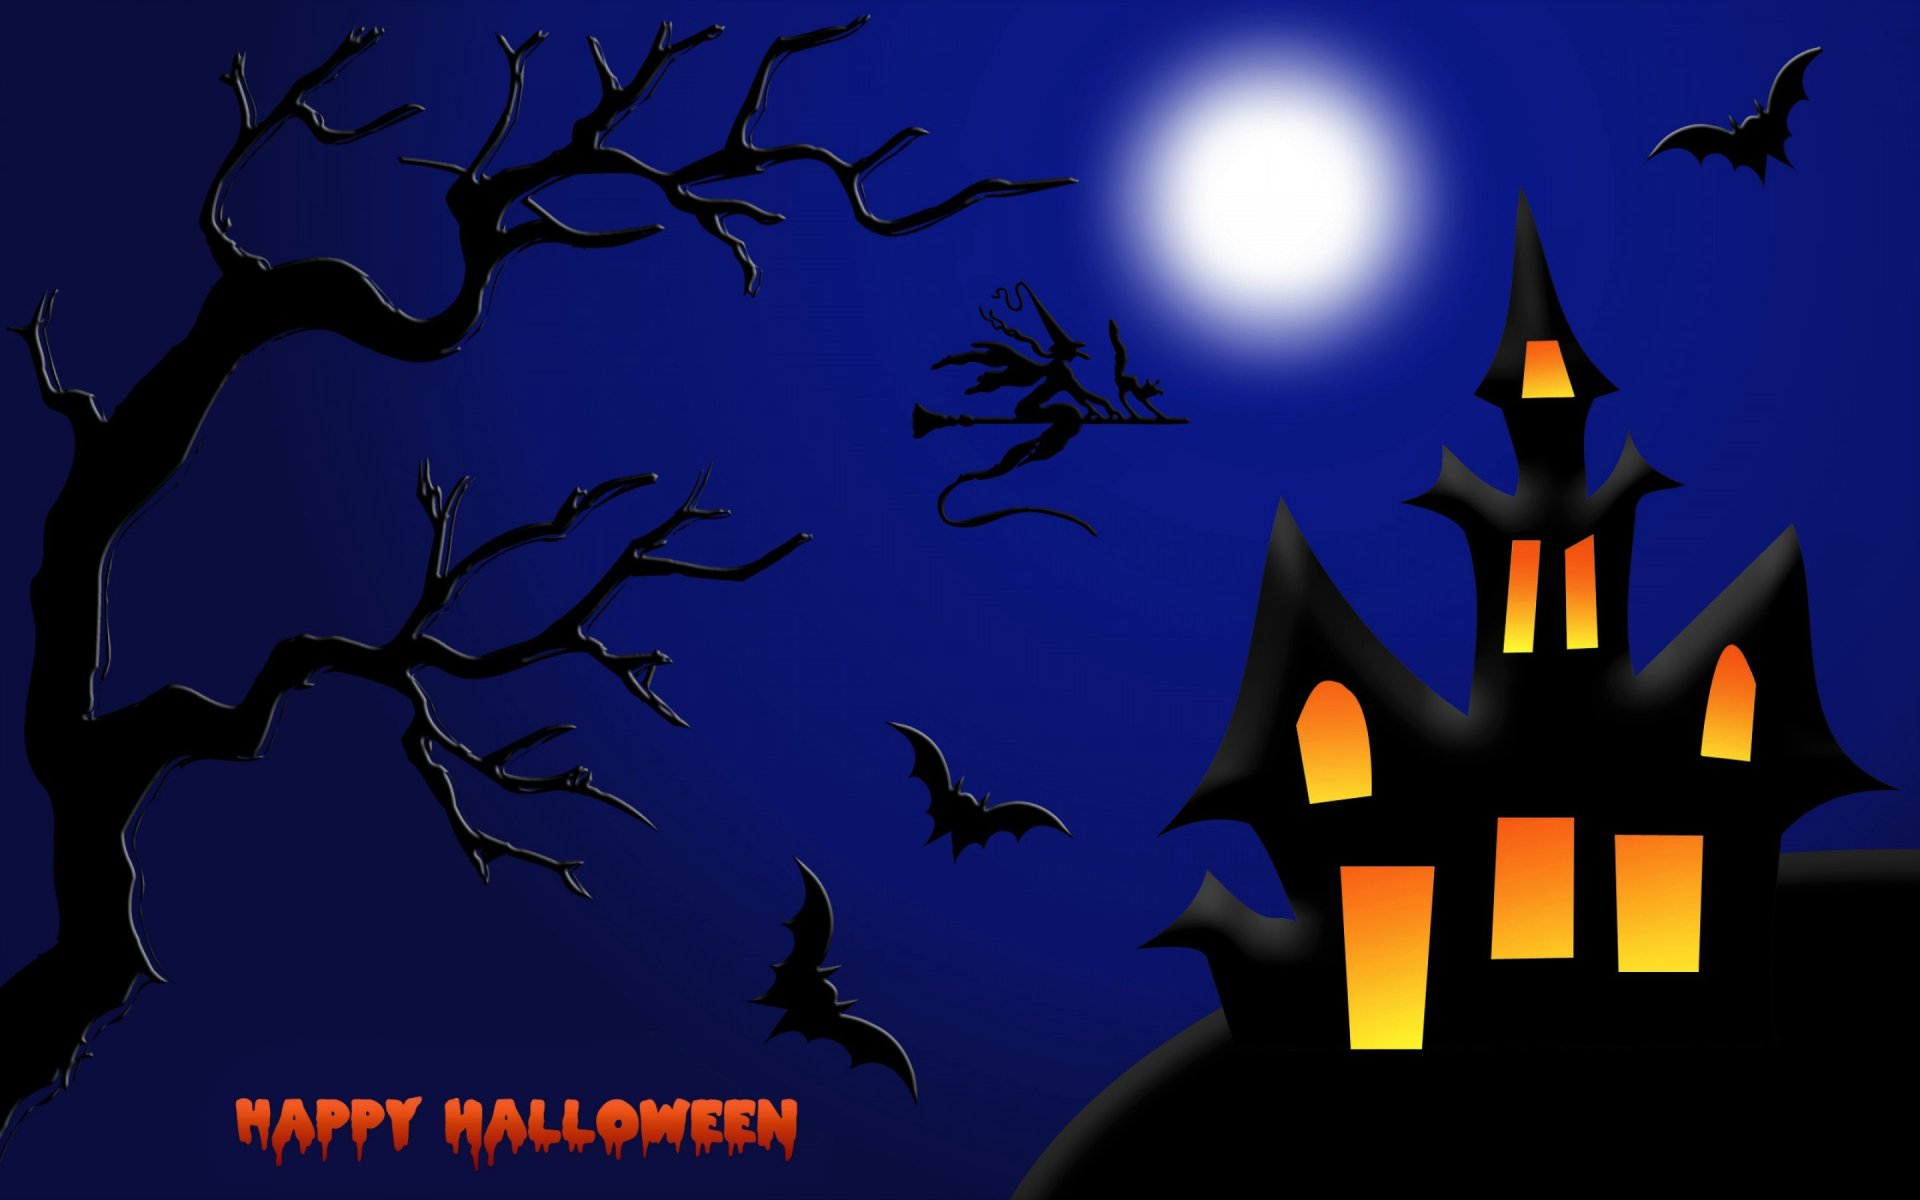 Holiday - Halloween  Happy Halloween Holiday House Witch Bat Moon Wallpaper